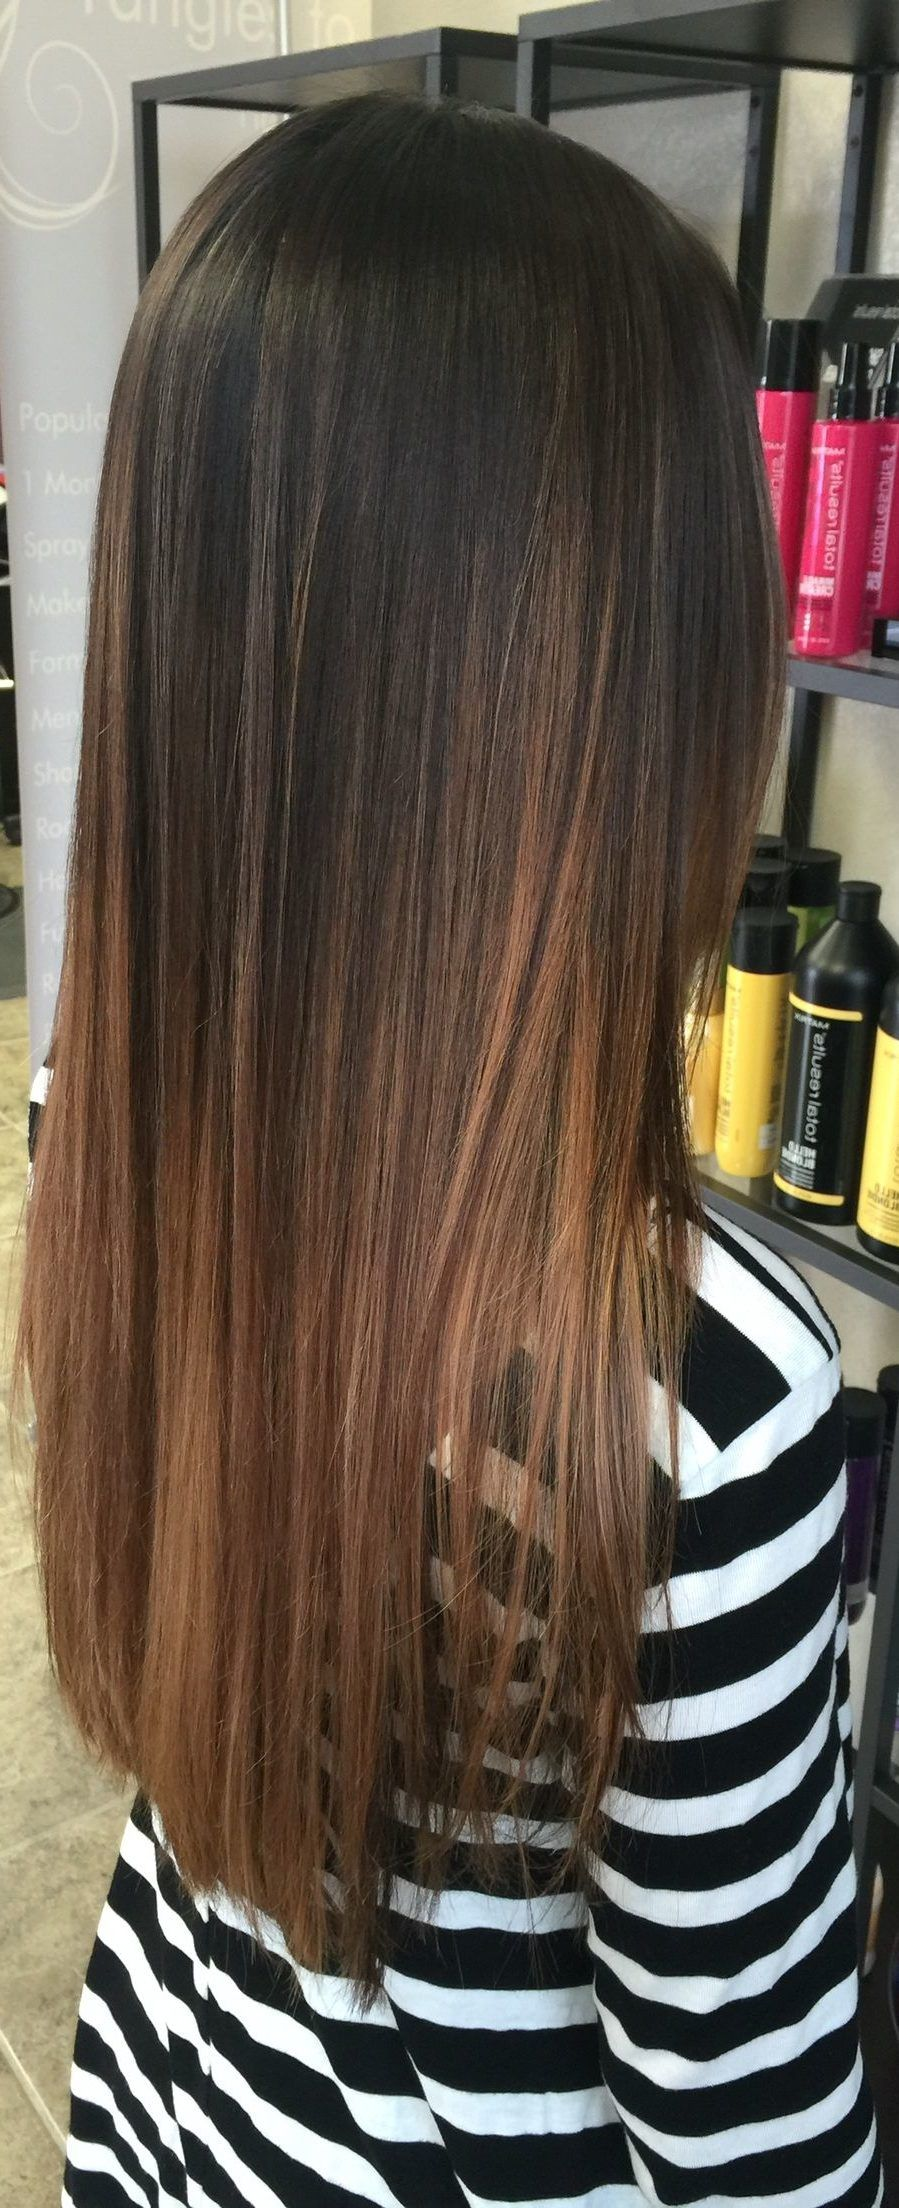 45 Dark Brown To Light Brown Ombre Long Hair Color Ideas These Best 45 Ombre Hair Color Ideas Fo Light Brown Ombre Hair Brown Ombre Hair Color Long Hair Color